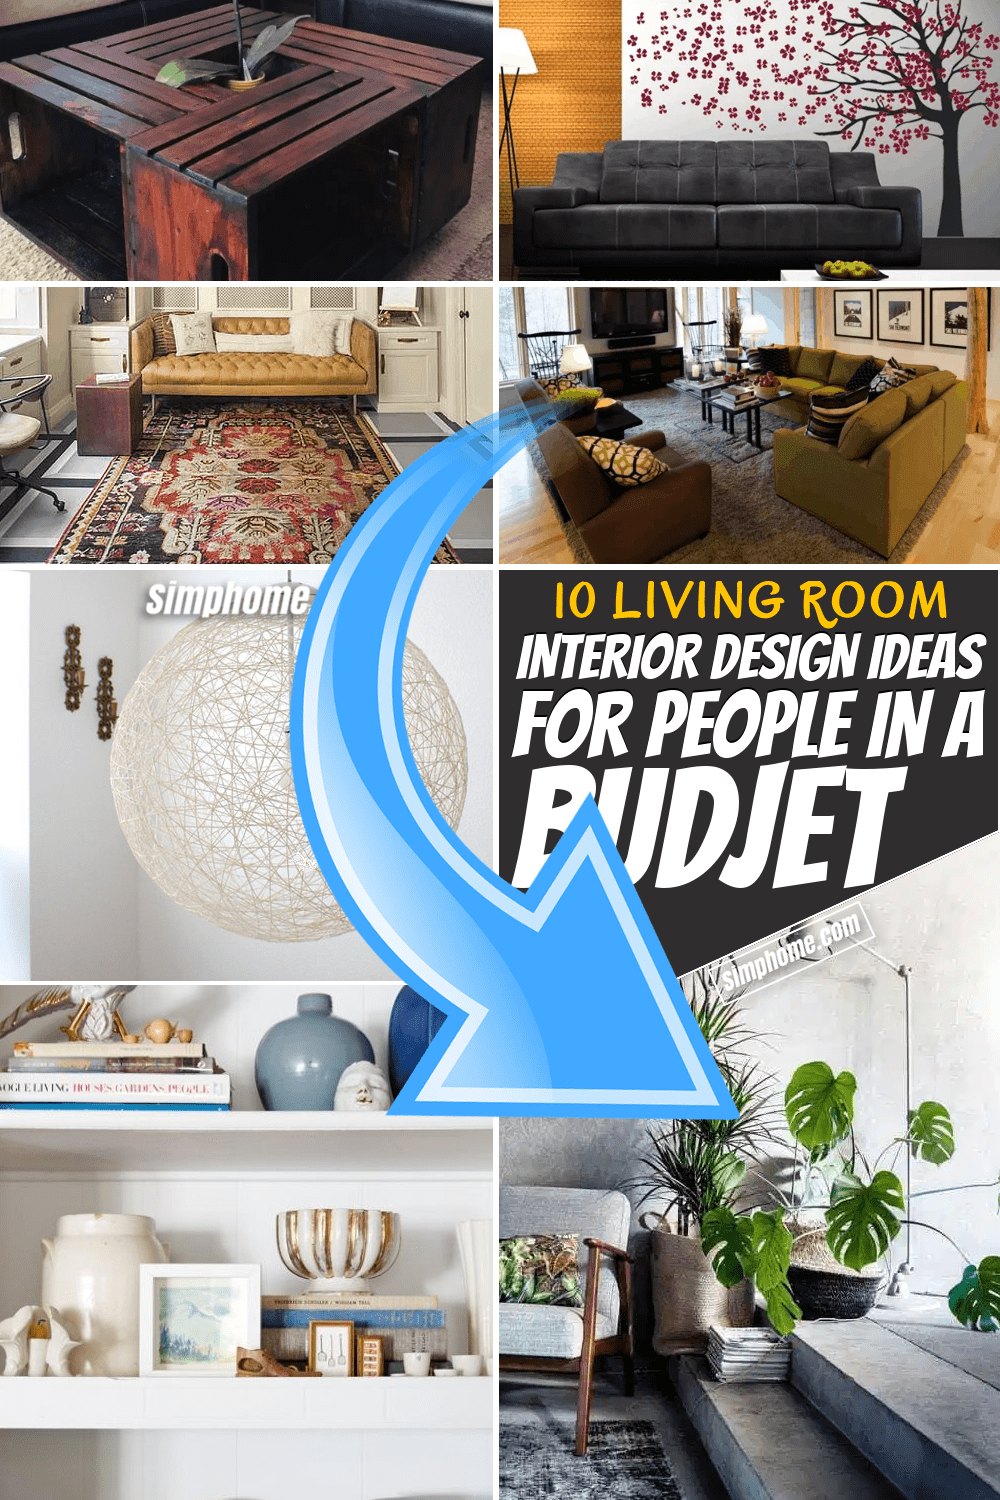 Simphome.com 10 Living Room Interior Design Ideas for People in a Budget Feature image